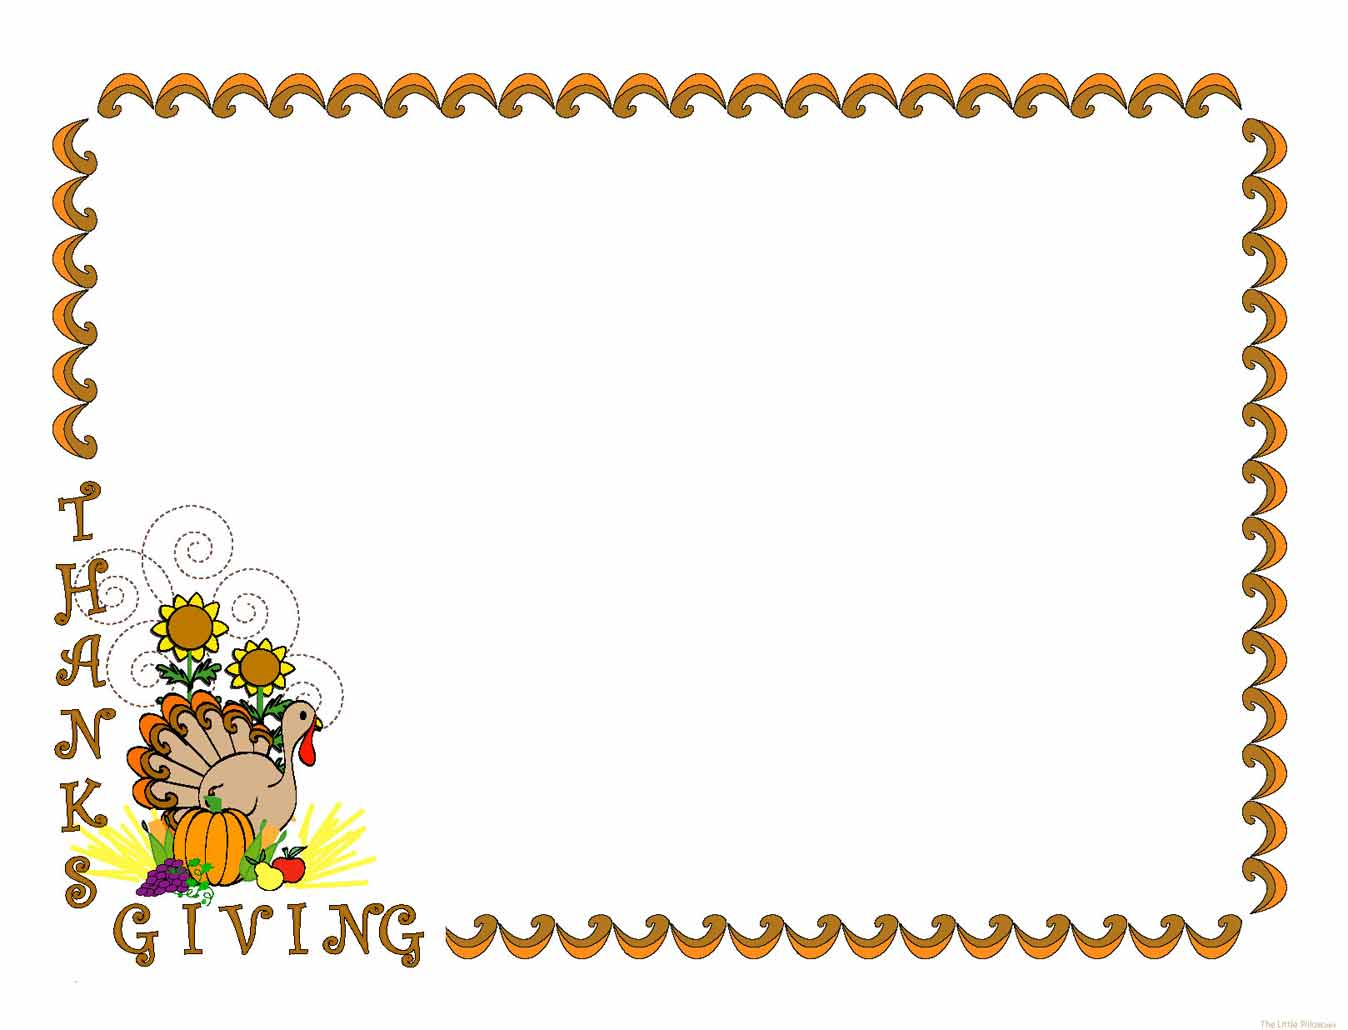 Free Thanksgiving Border Cliparts, Download Free Clip Art, Free Clip.